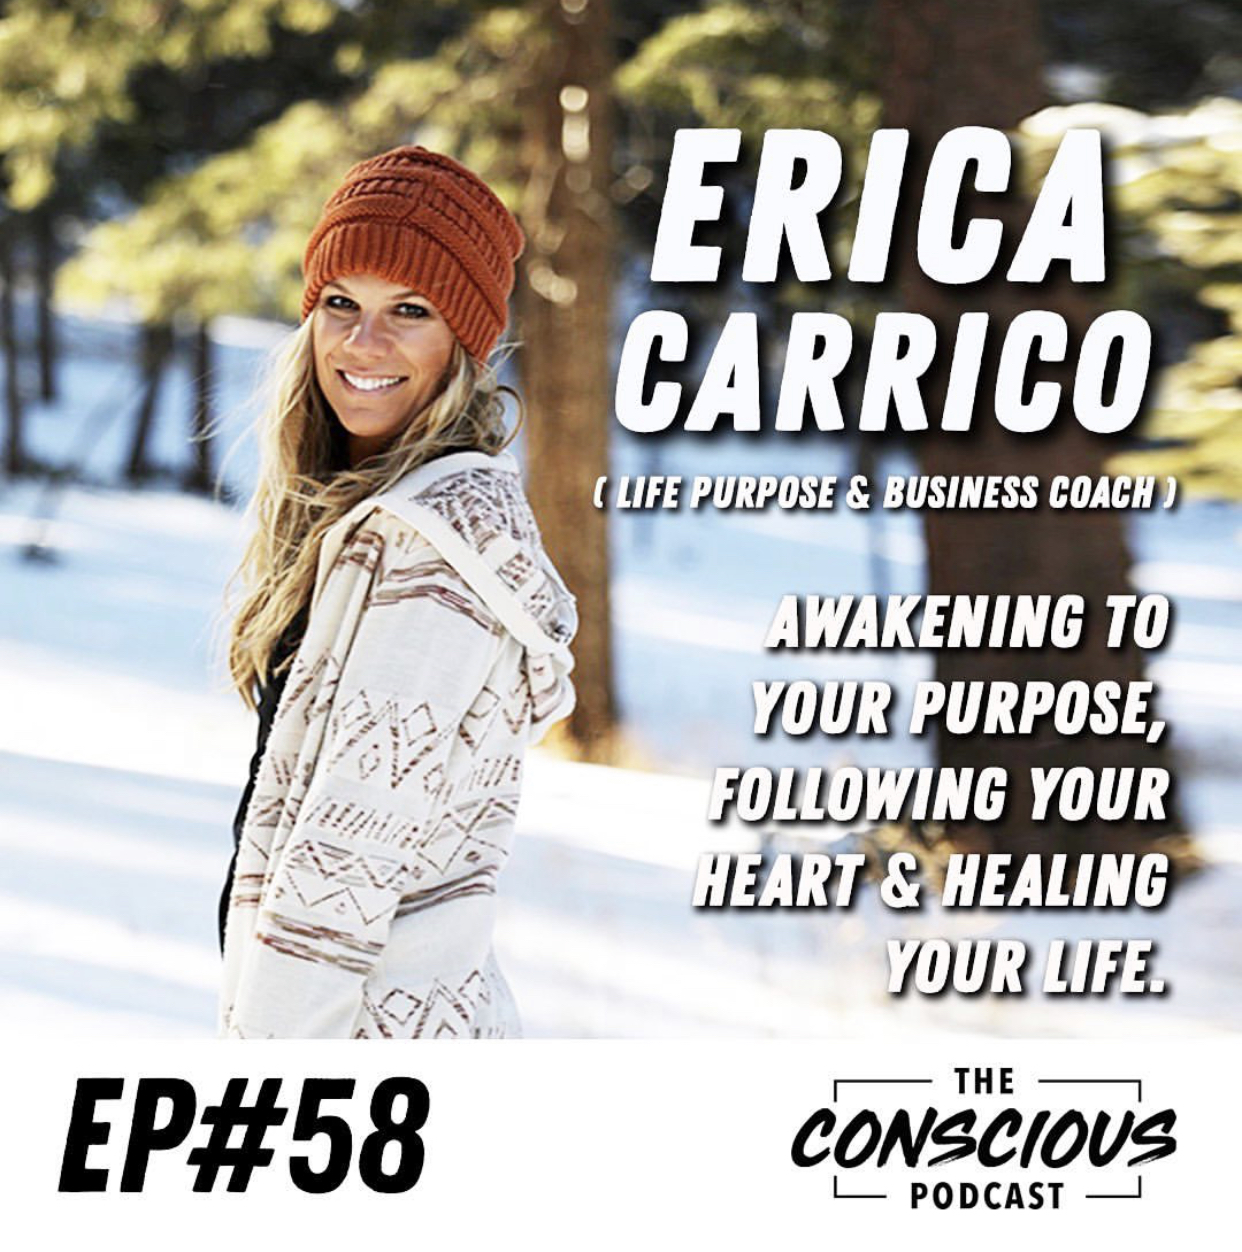 Erica Carrico The Conscious Podcast.jpg